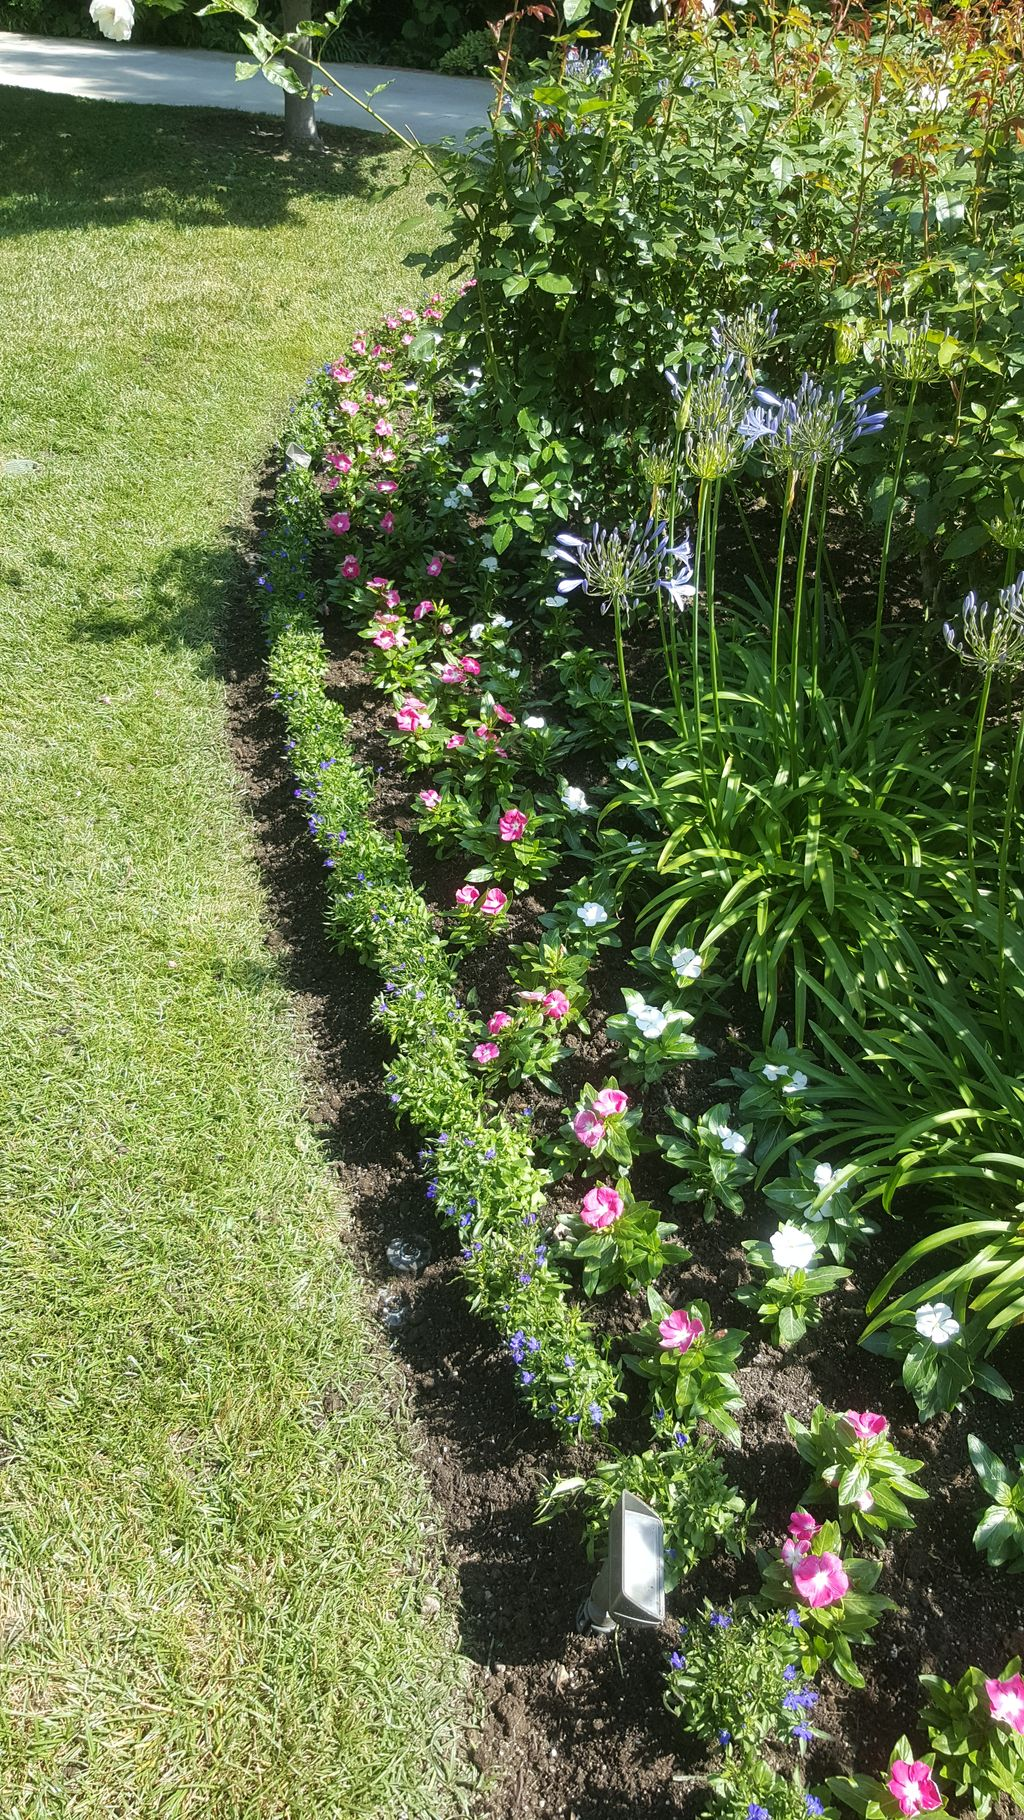 New annuals to planter areas